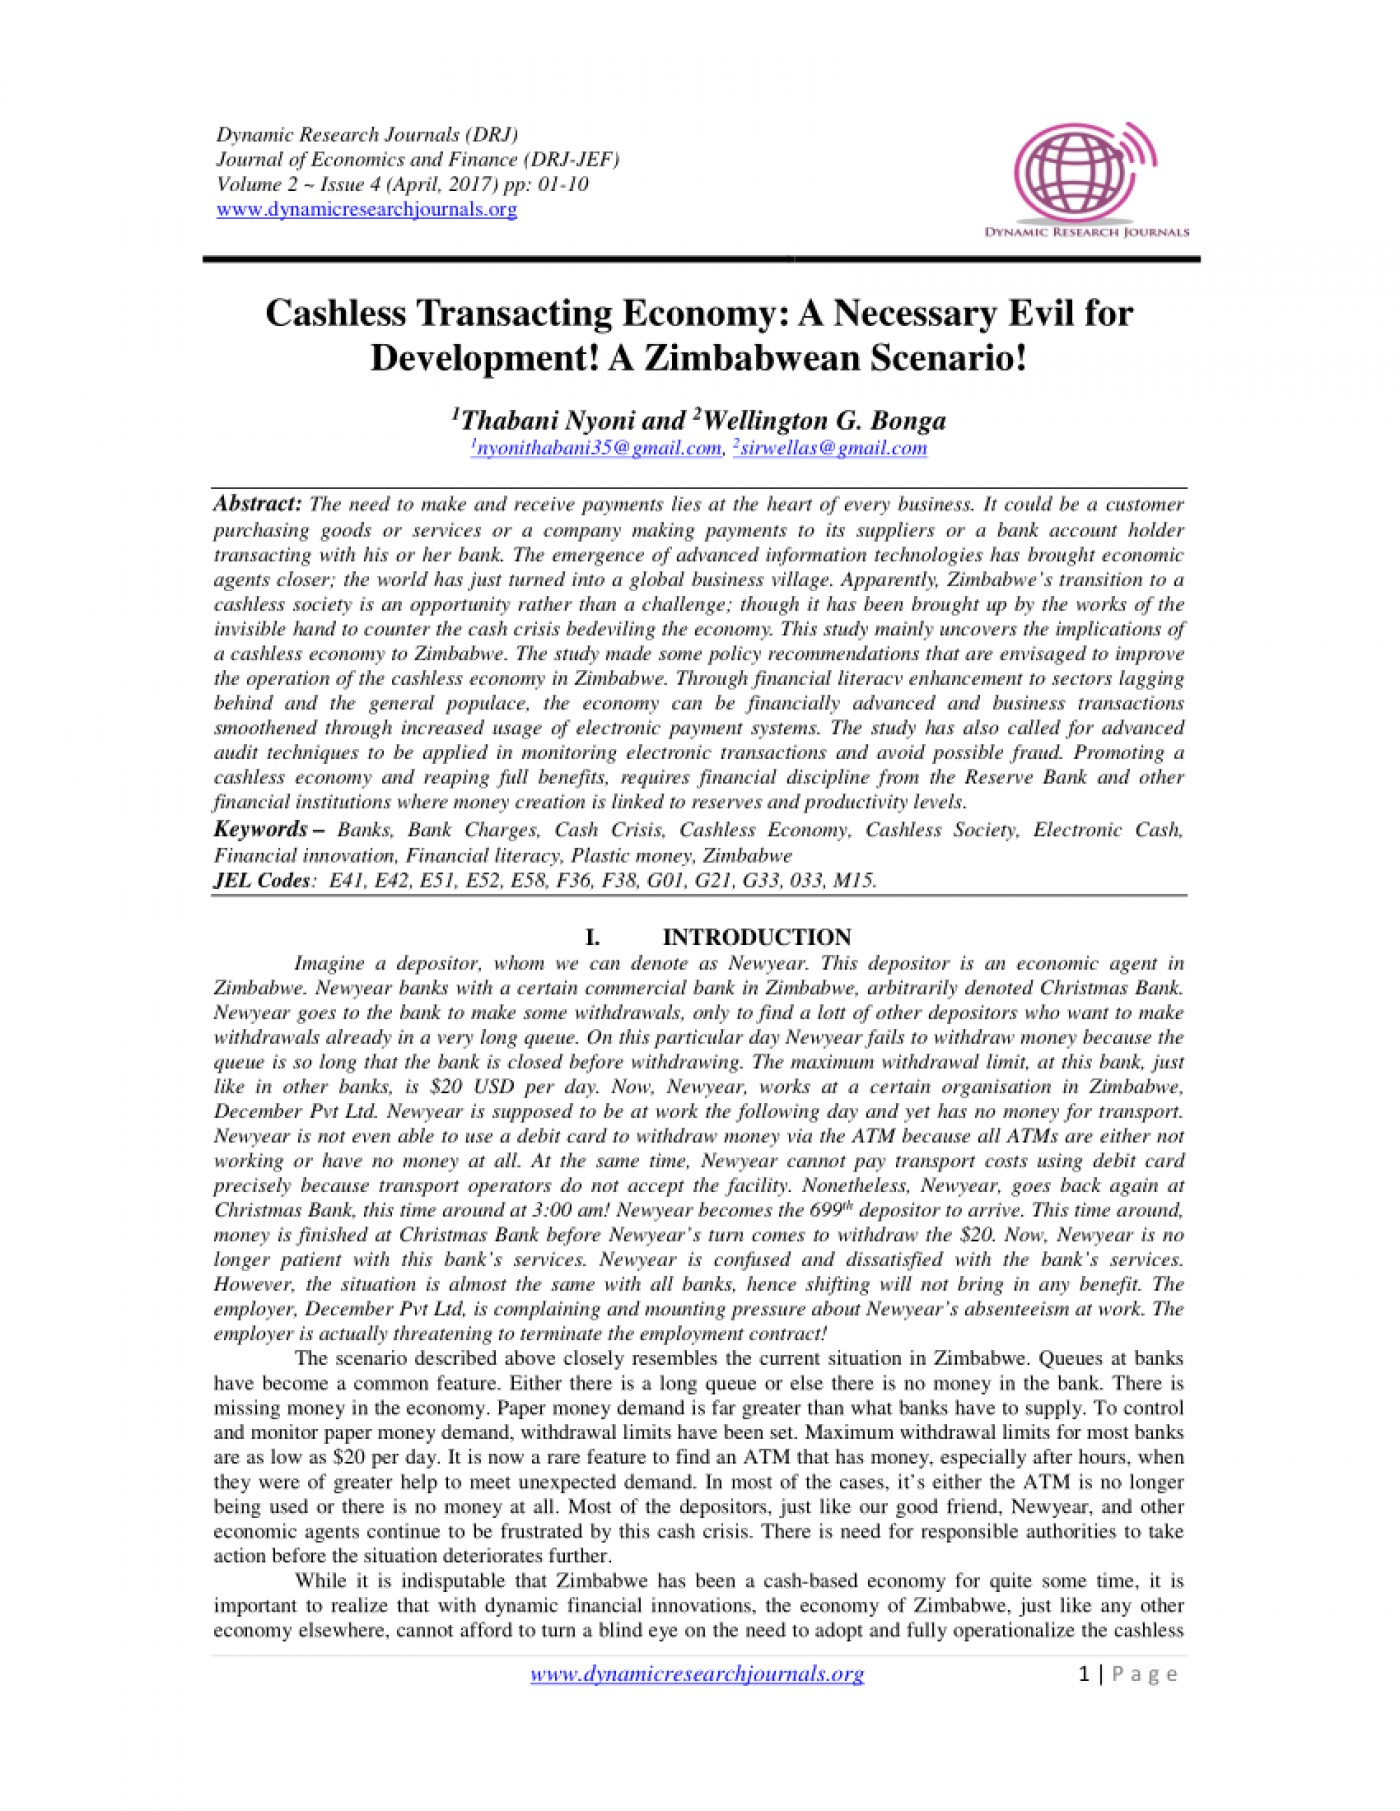 003 Largepreview Cash To Cashless Economy Research Rare Paper 1400